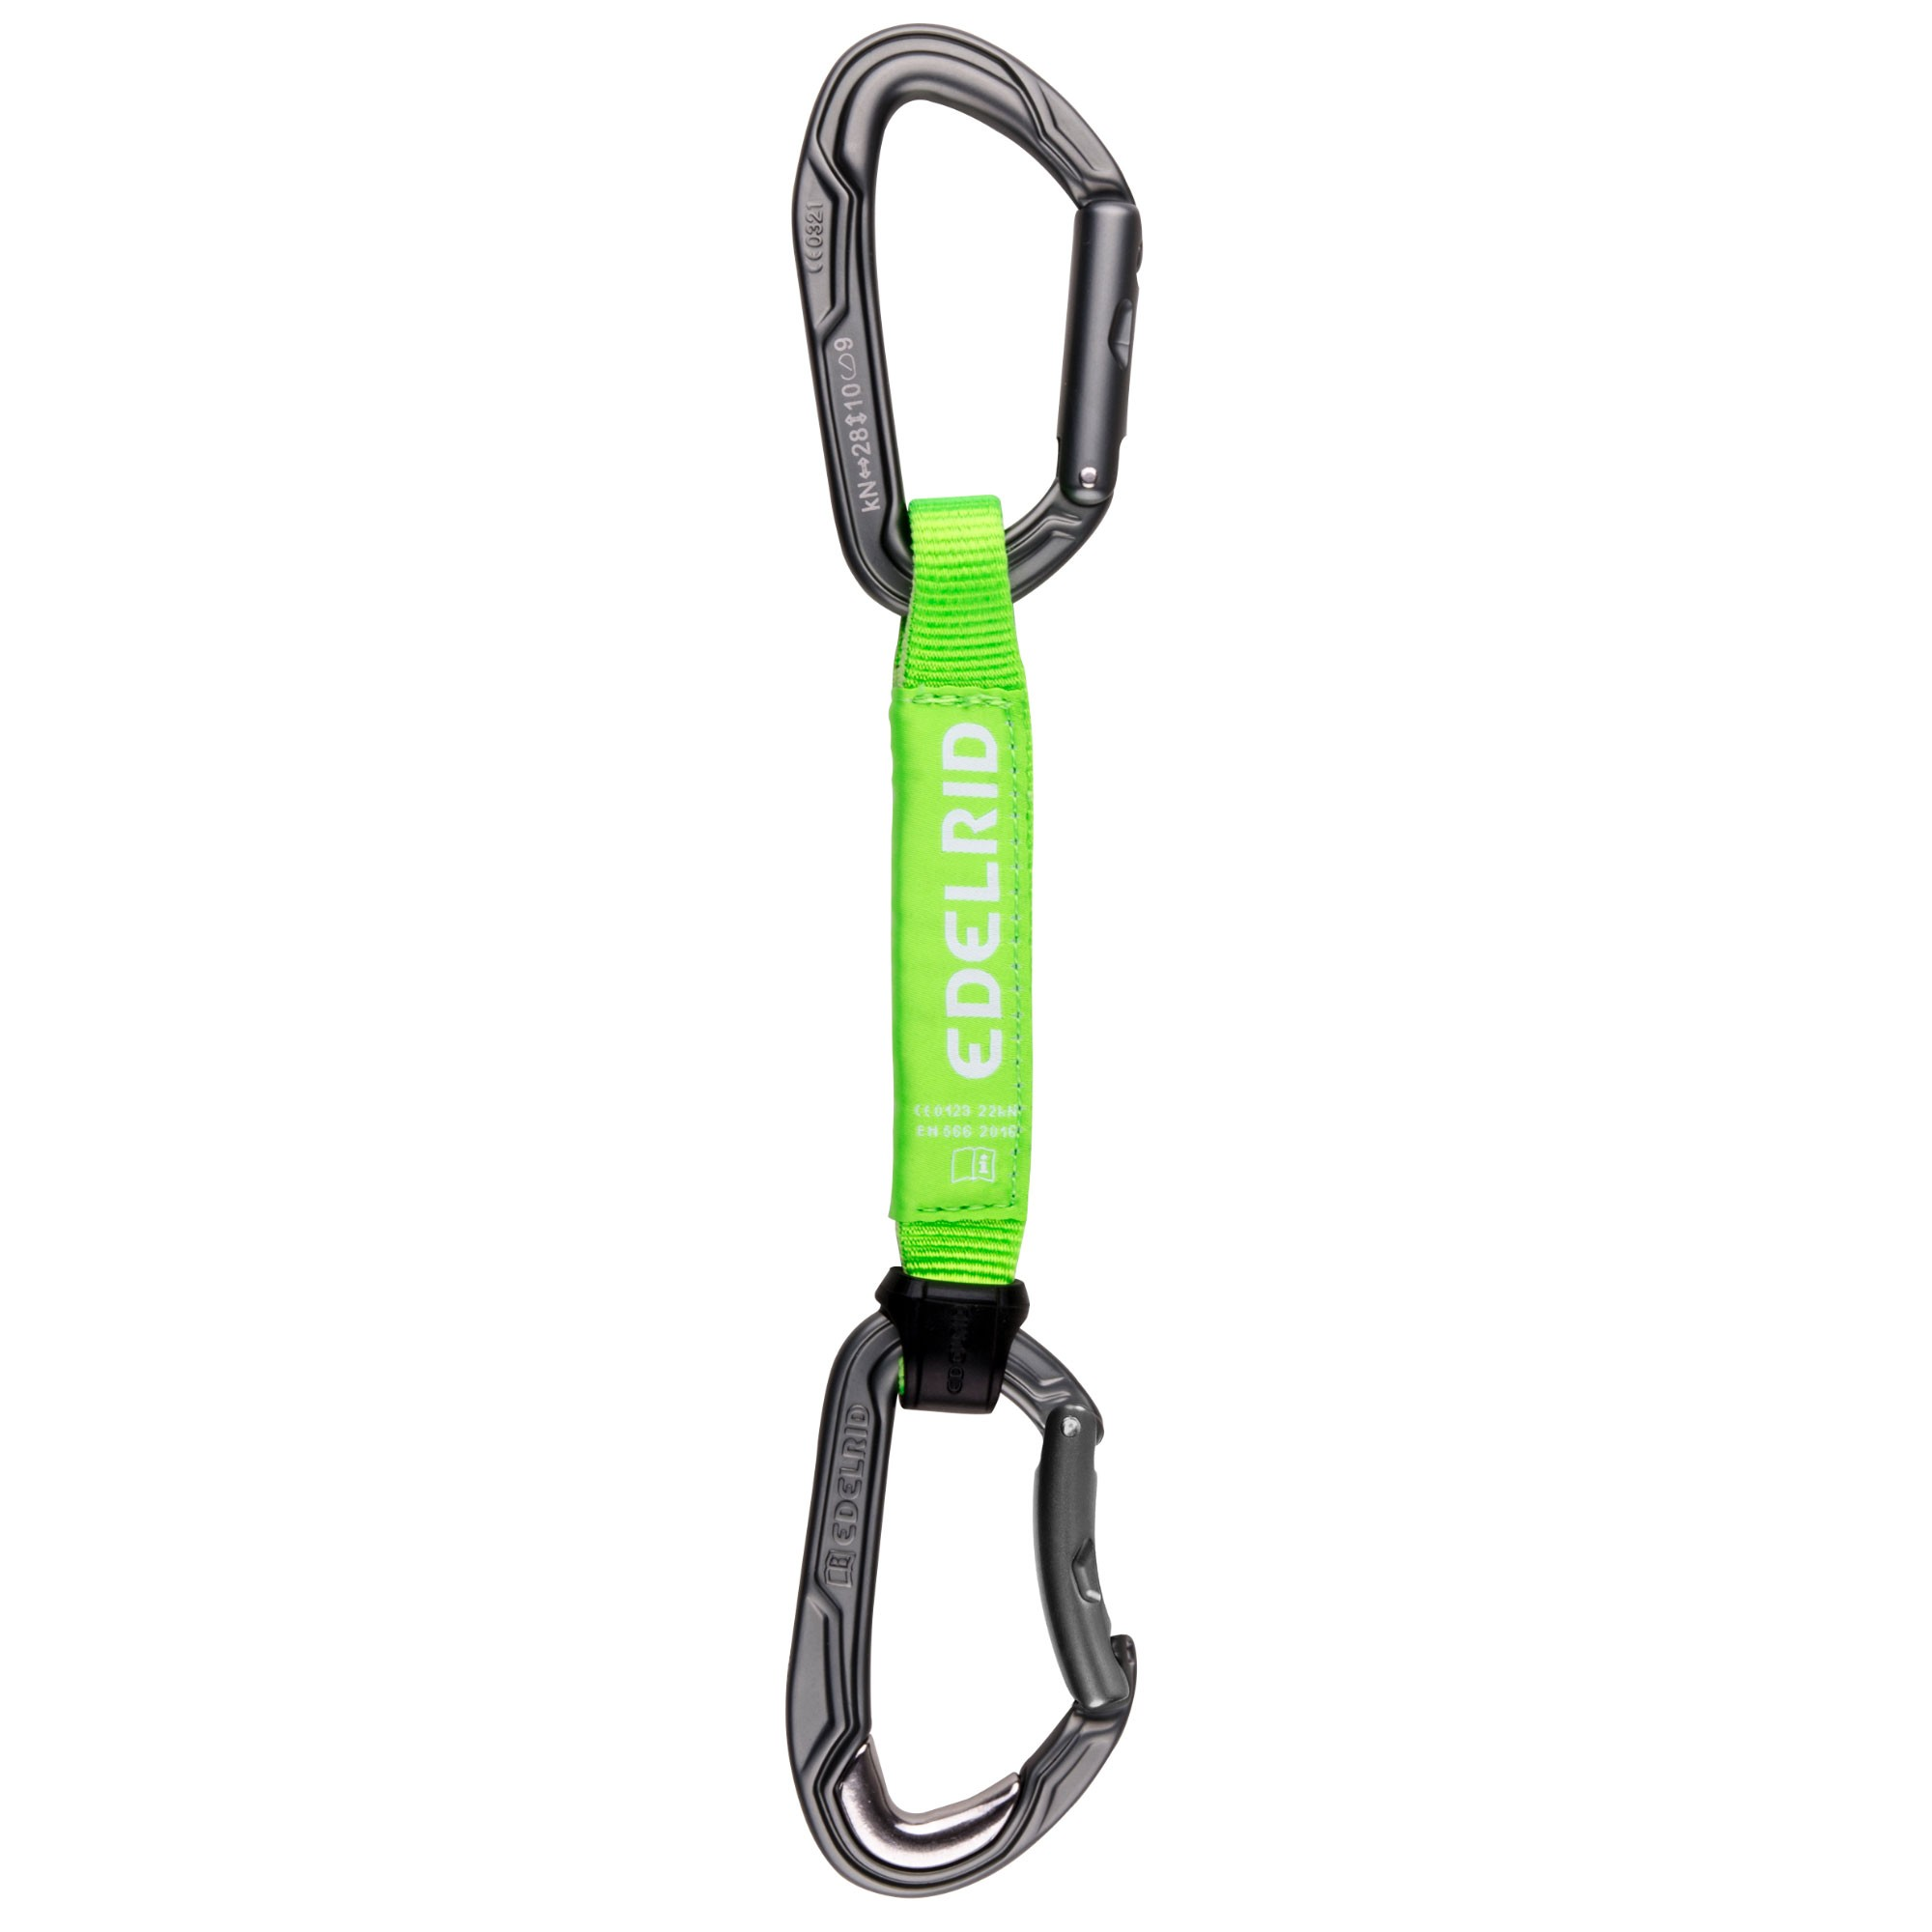 Edelrid Bulletproof Ambassador Quickdraw Set 16cm - Neon Green